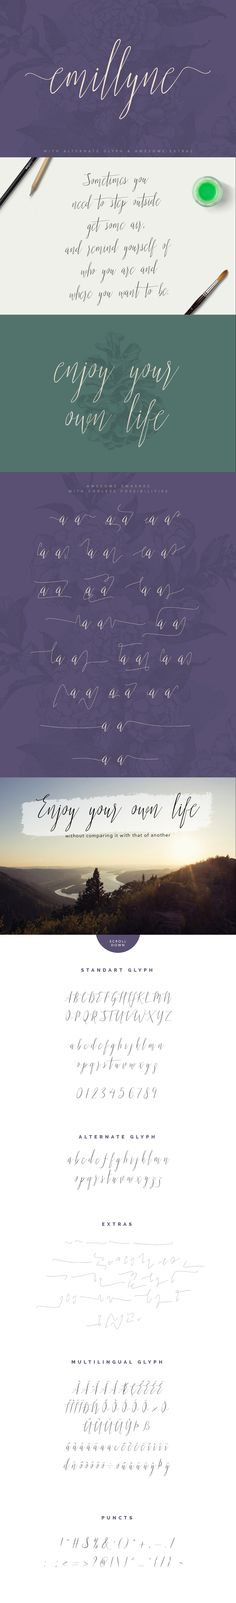 https://creativemarket.com/vuuuds/353608-Emillyne